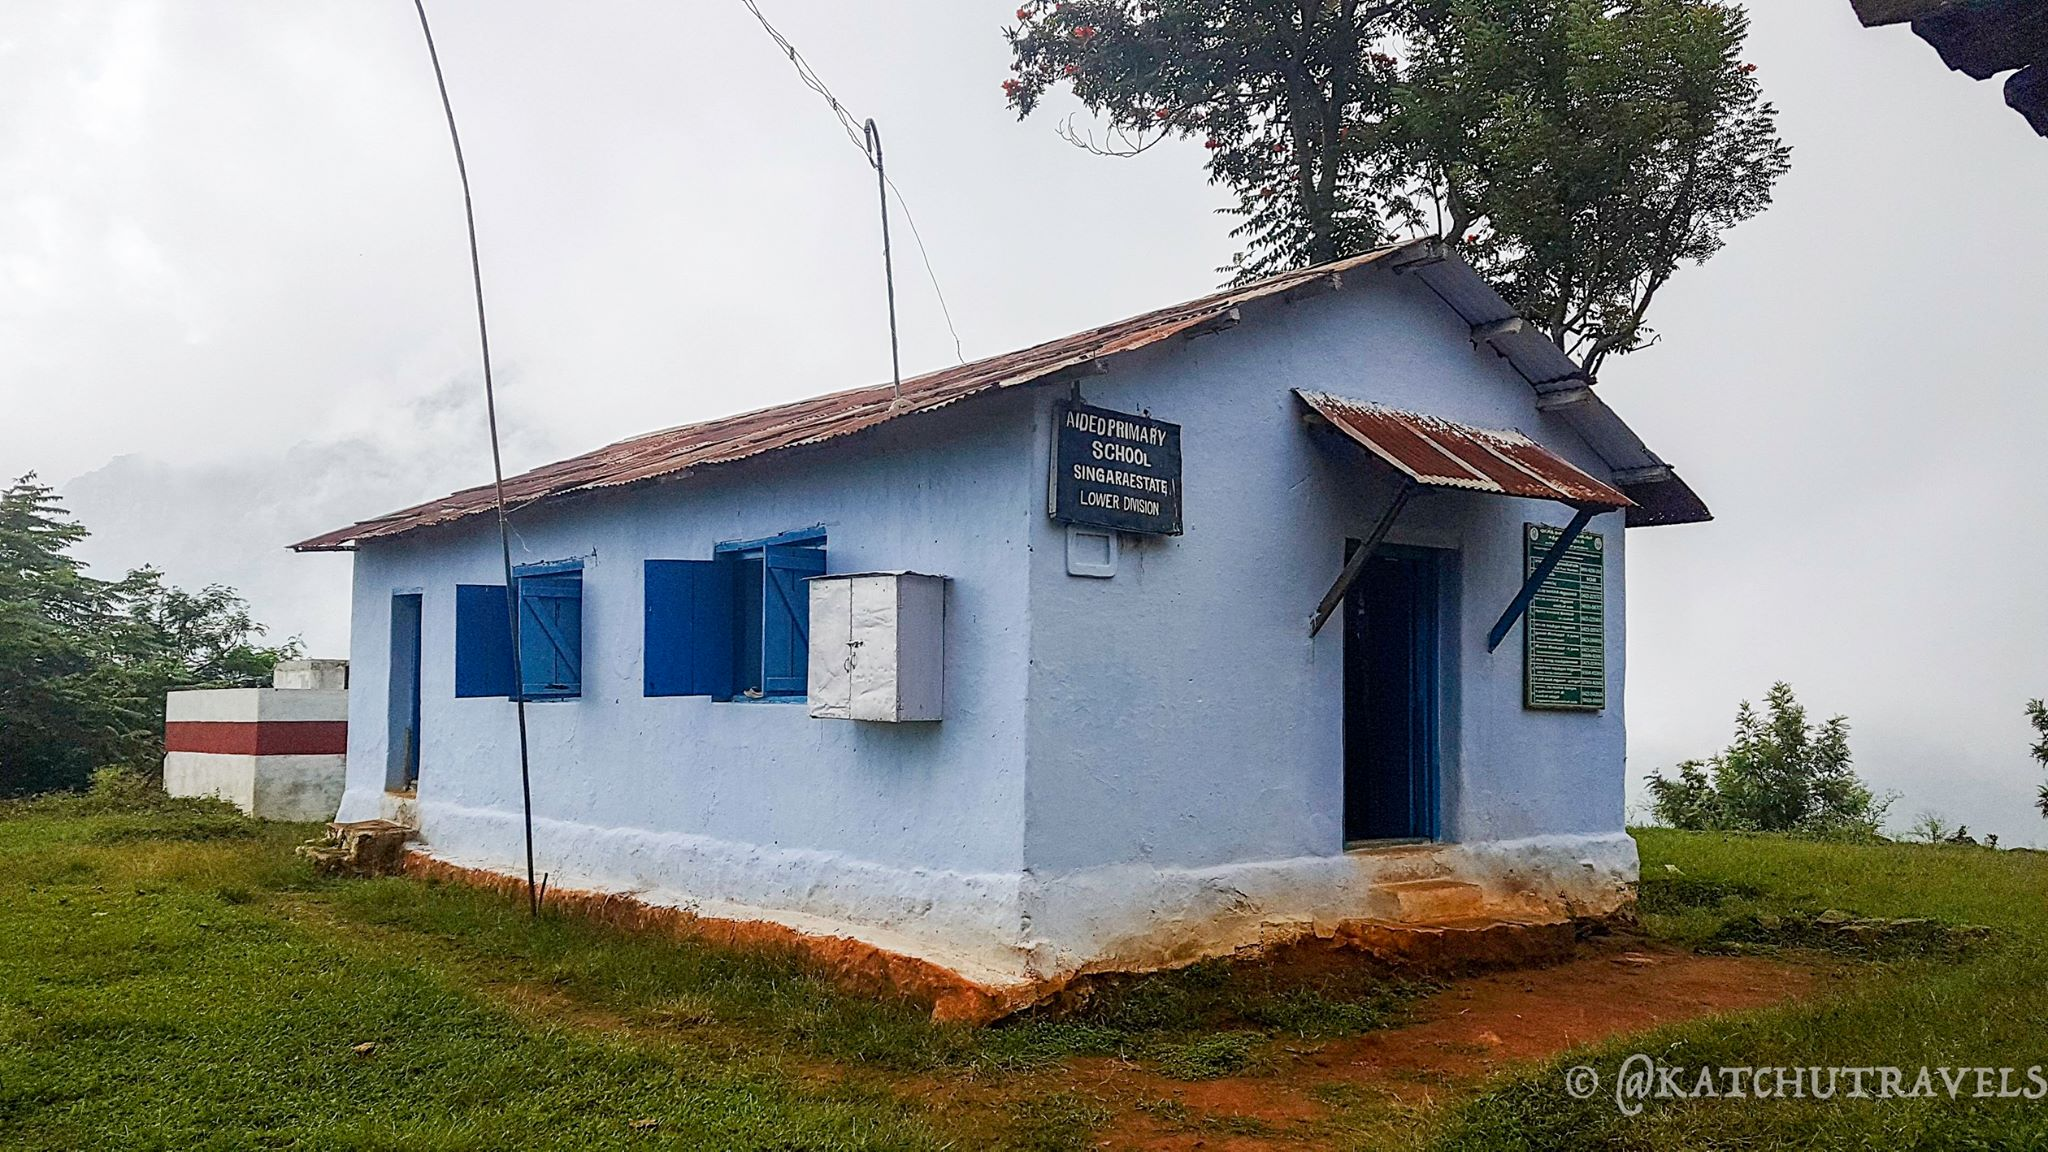 Goverment School in Singara Estate- Coonoor